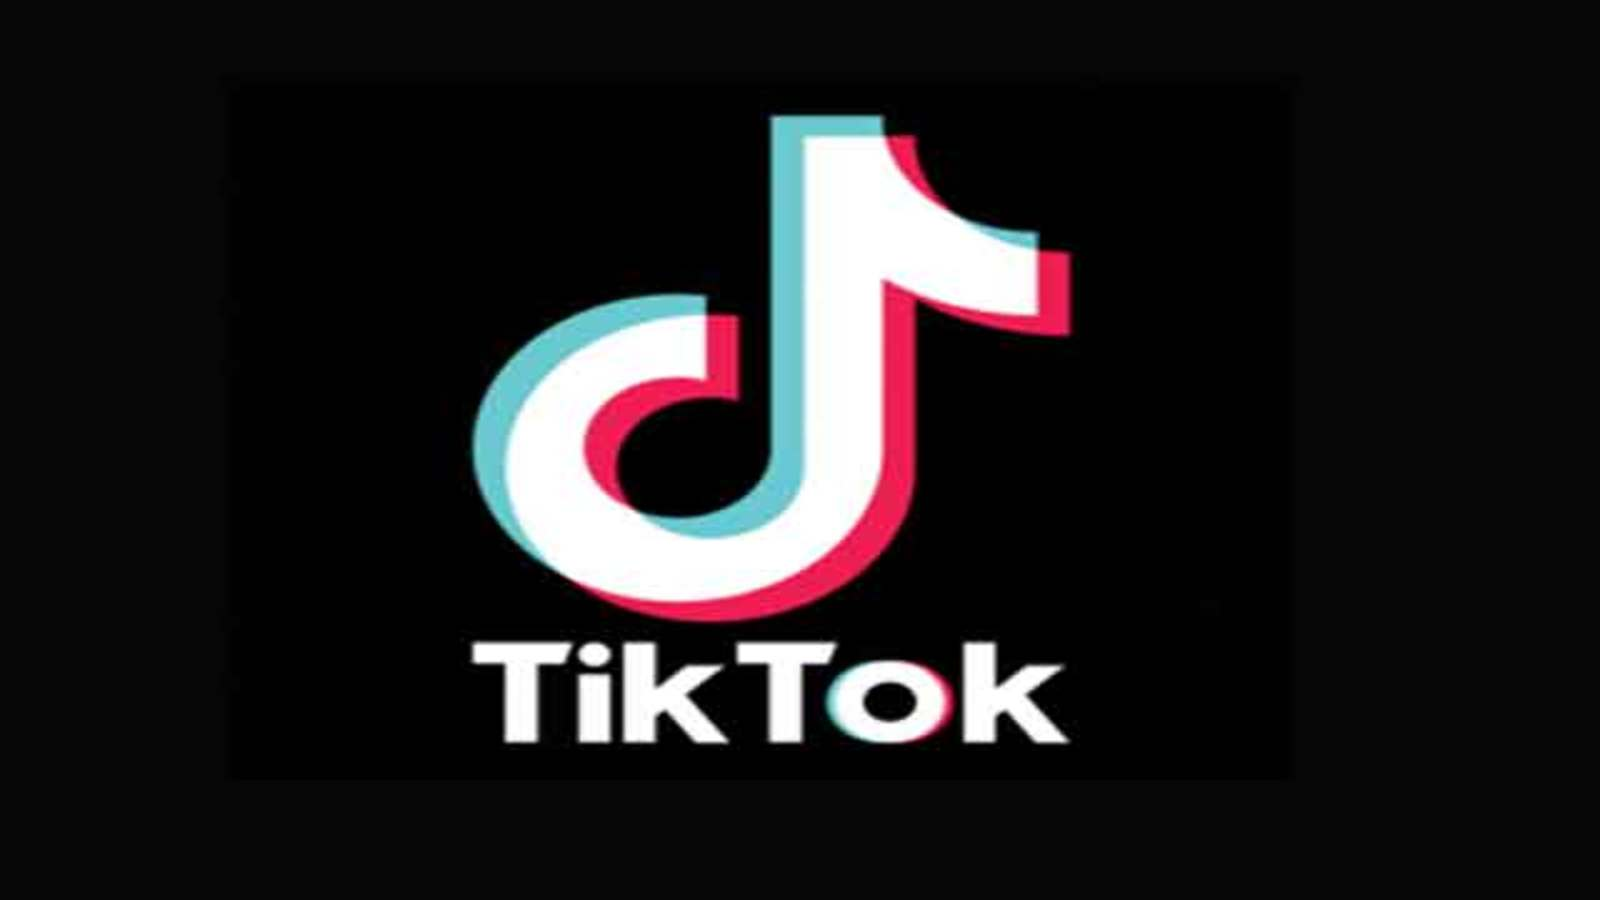 TikTok announces withdrawal from Hong Kong